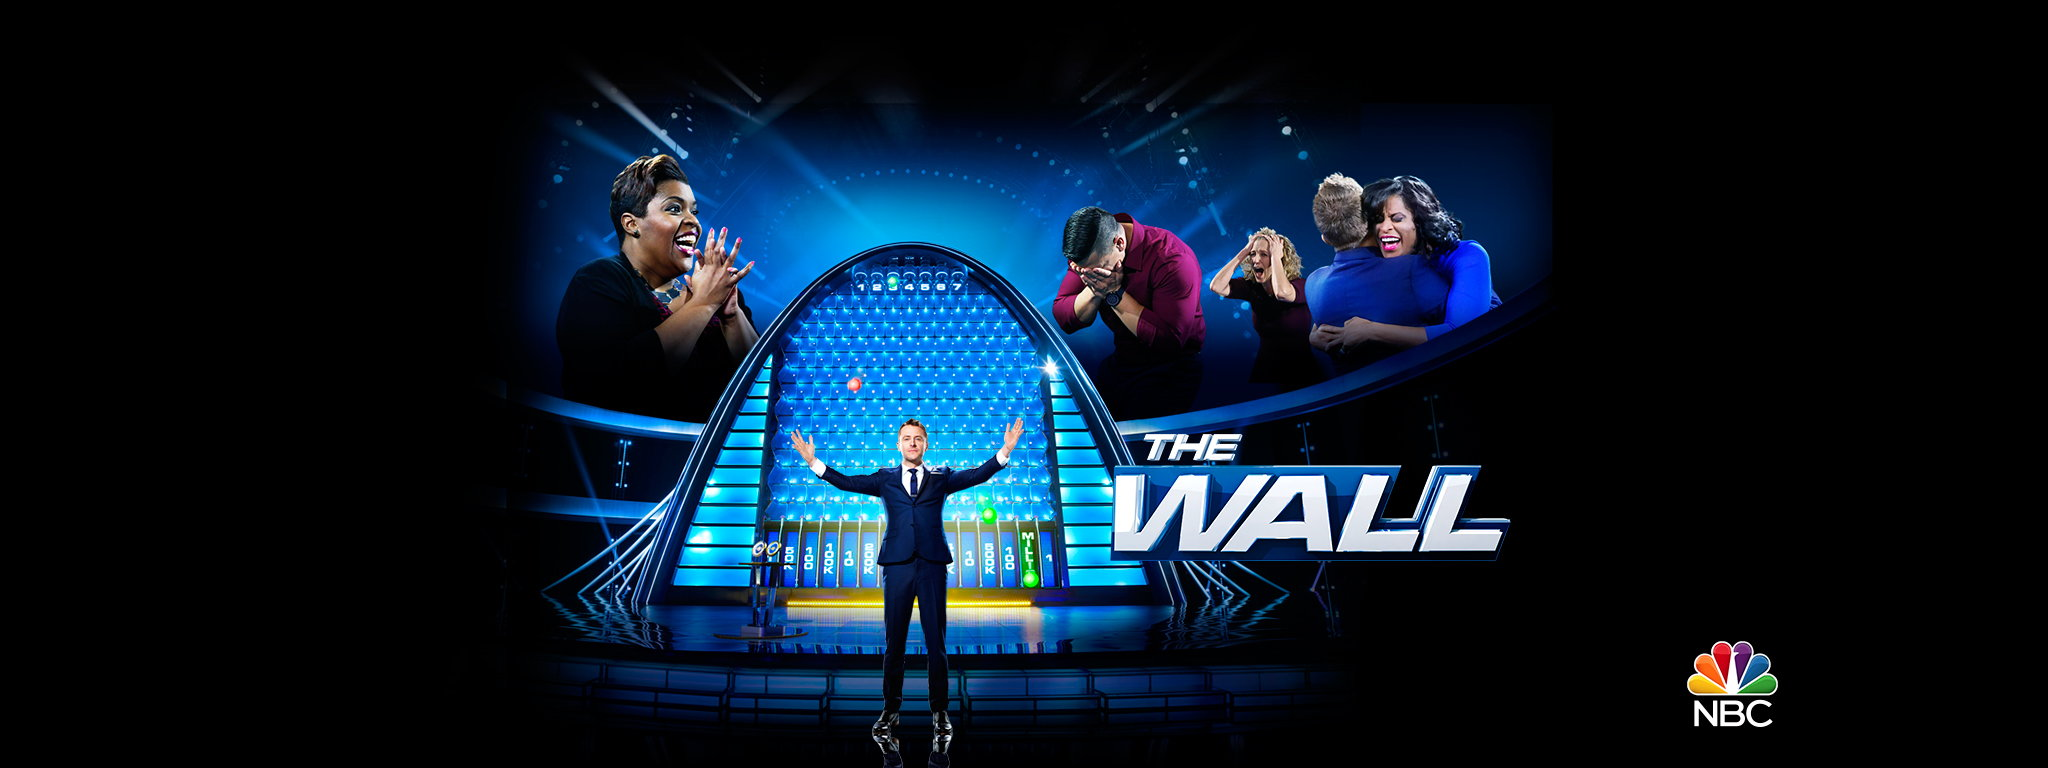 The wall release date in Sydney